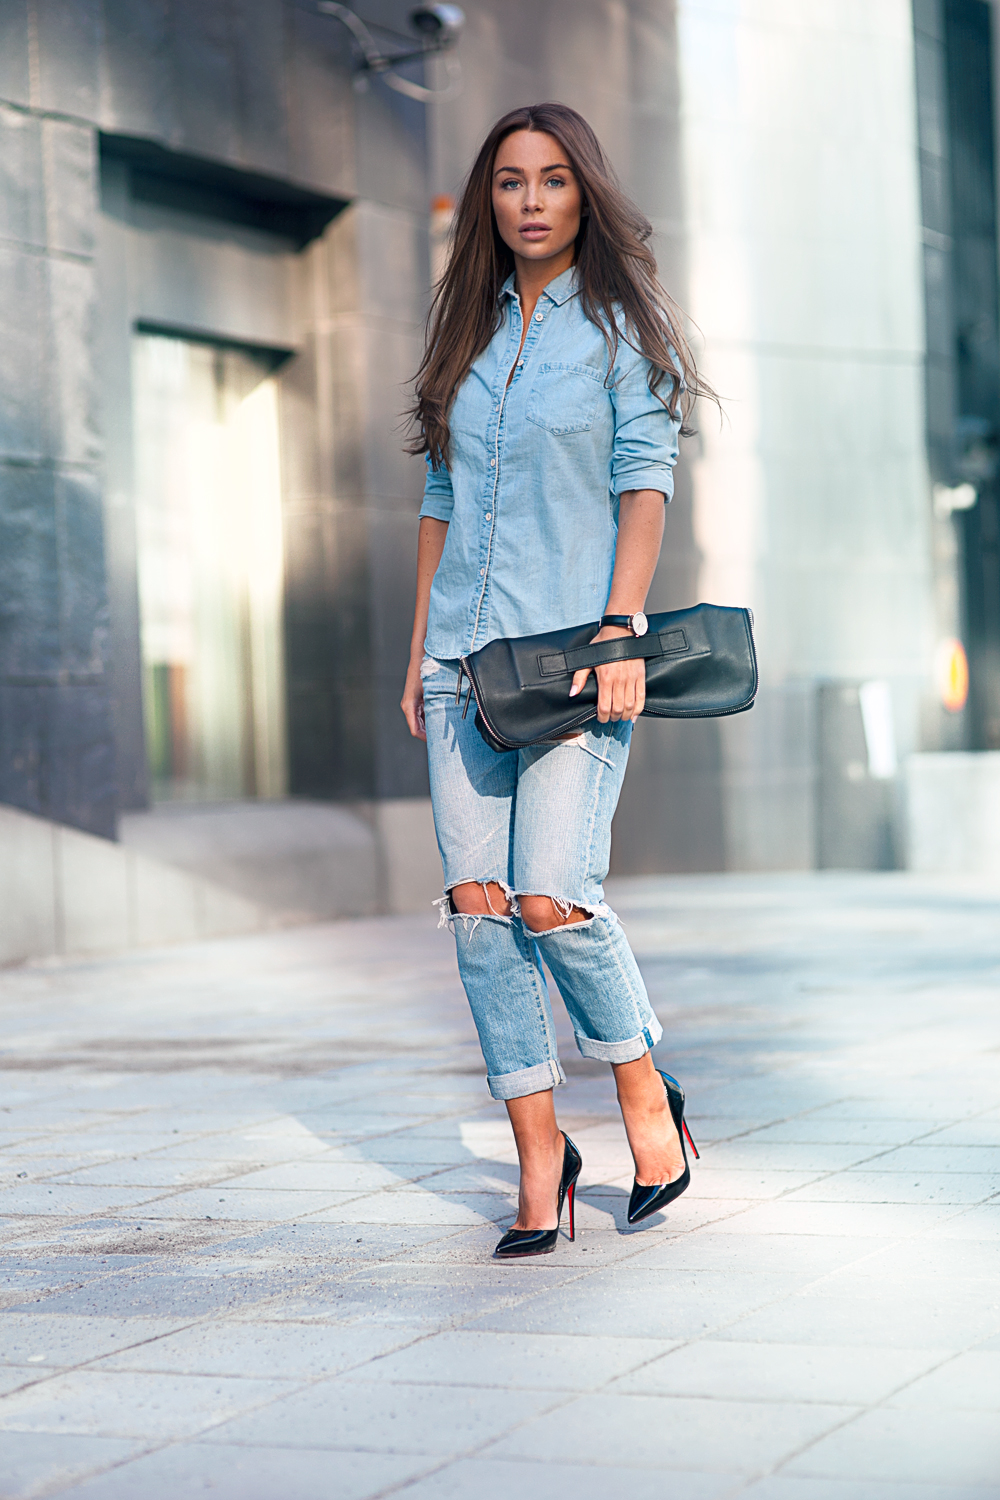 Fashionable Denim Outfit Ideas for Women  Ohh My My